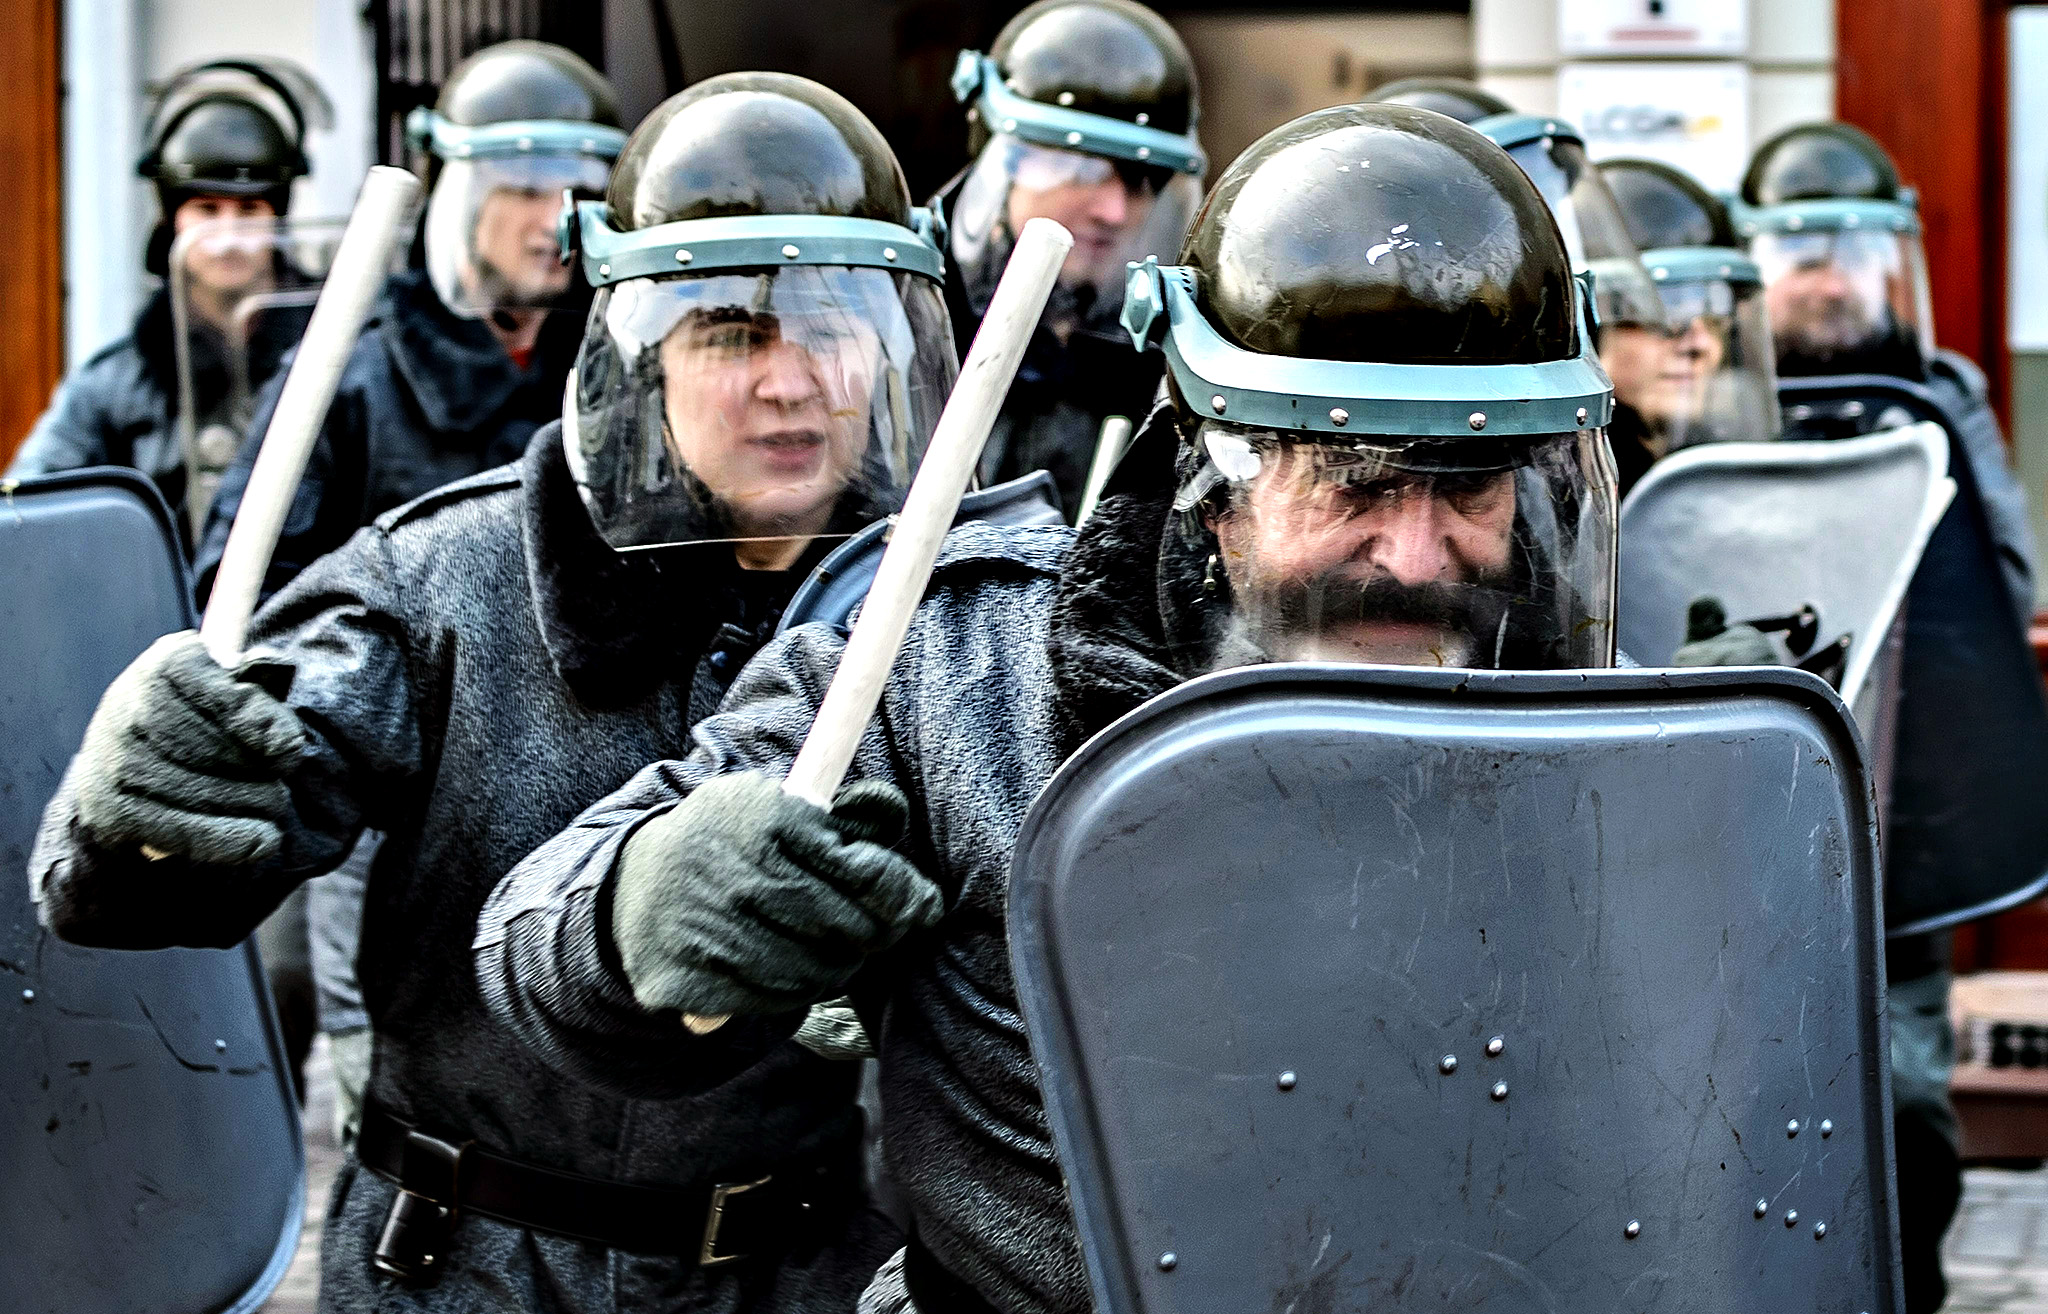 Units of ZOMO (Motorized Reserves of the Citizens' Militia) perform during reenacted street riots - a reconstruction of historical events of 13 December 1981, in Lublin, Poland. Martial law in Poland was declared by former general Wojciech Jaruzelski on 13 December 1981 aiming to block reforms urged by the 'Solidarity' movement.